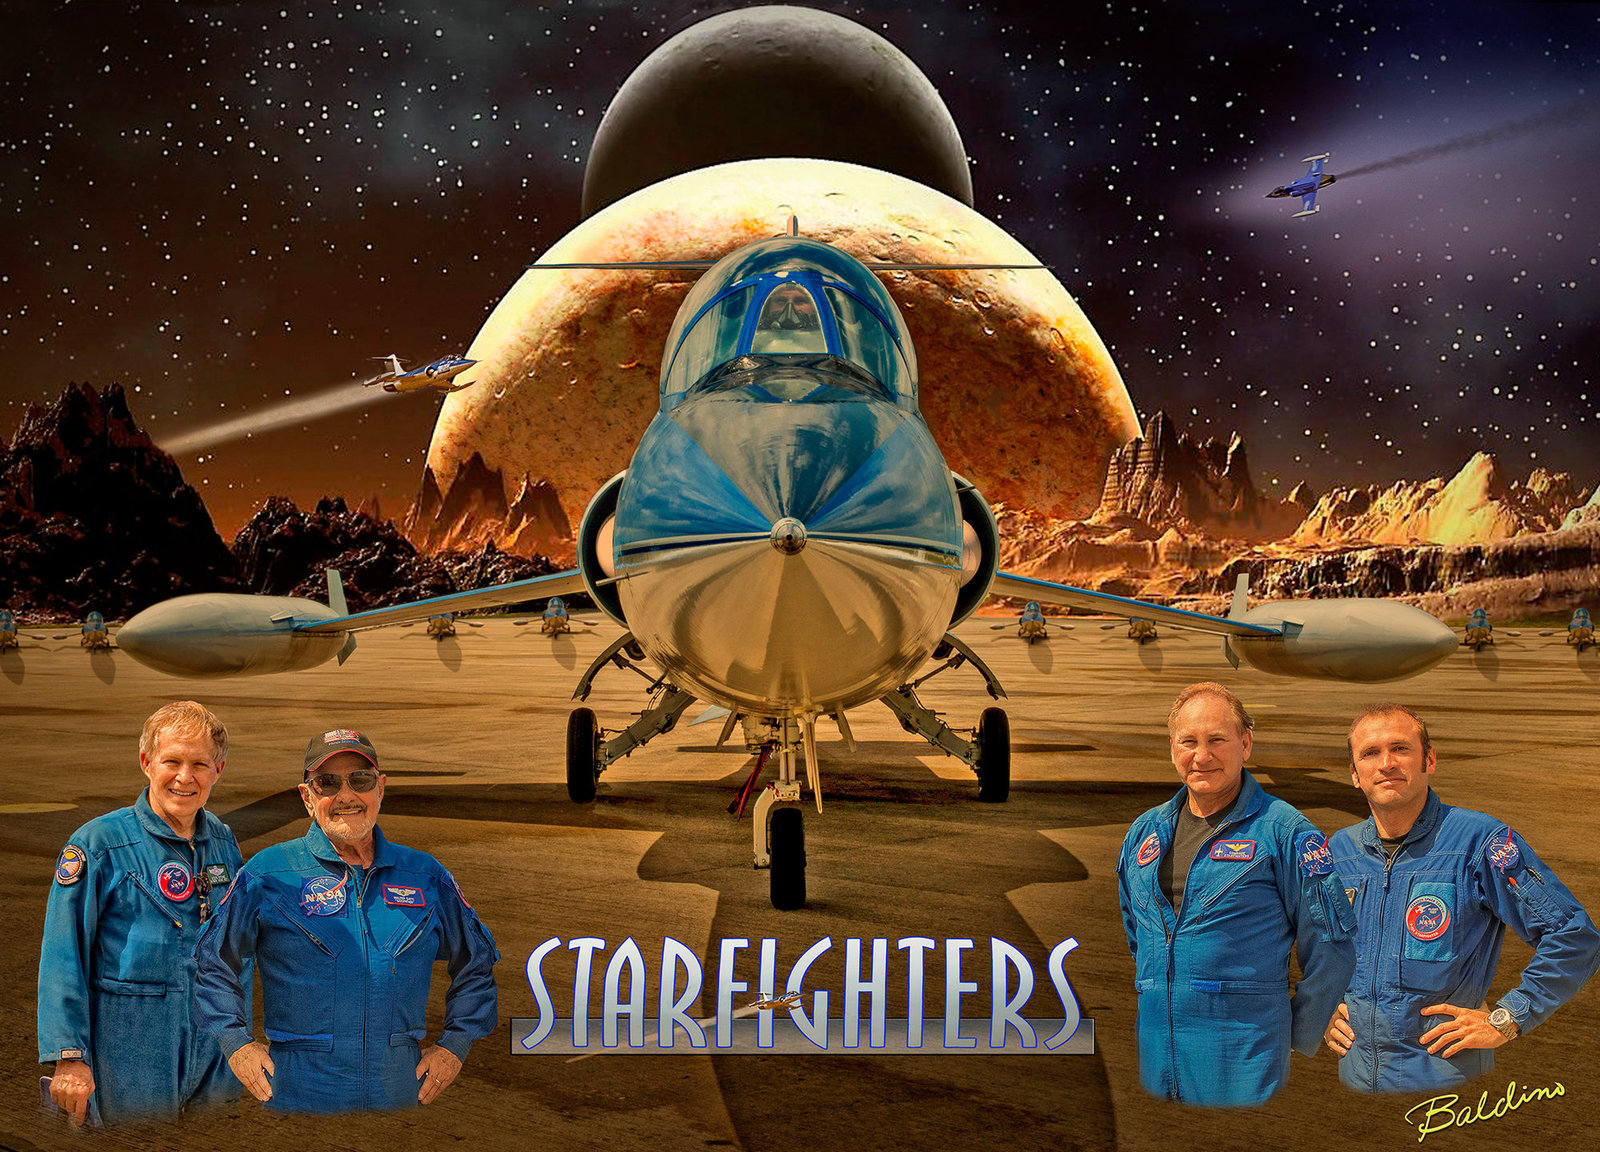 starfighter with men and logo 25x18 - Copy